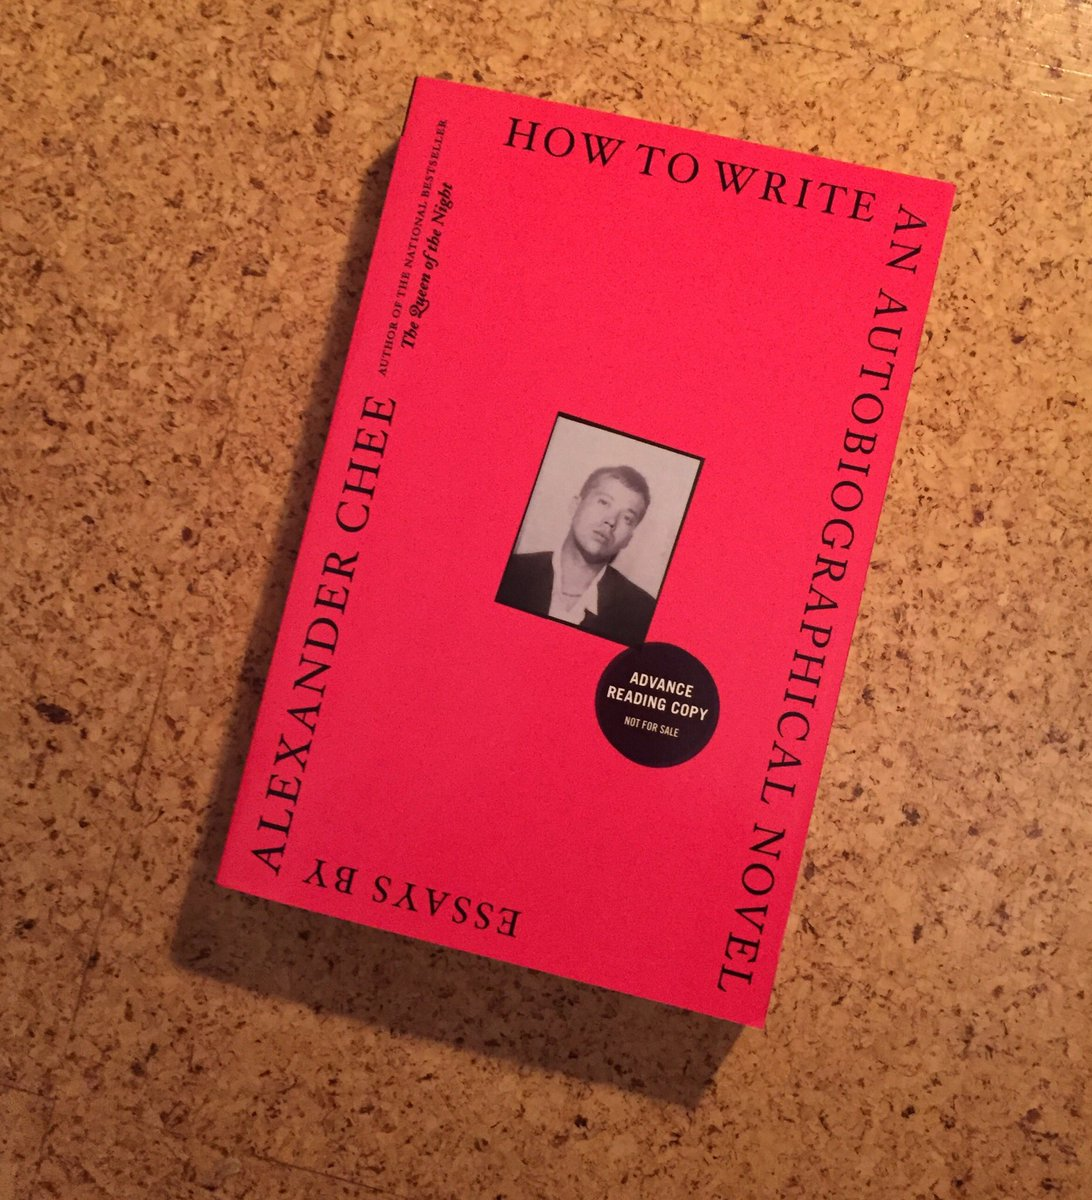 Alexander Chee On Twitter My Essay Collection How To Write An  Alexander Chee On Twitter My Essay Collection How To Write An  Autobiographical Novel Is Available For Preorder Now English Literature Essays also High School Entrance Essays Example Of Thesis Statement In An Essay